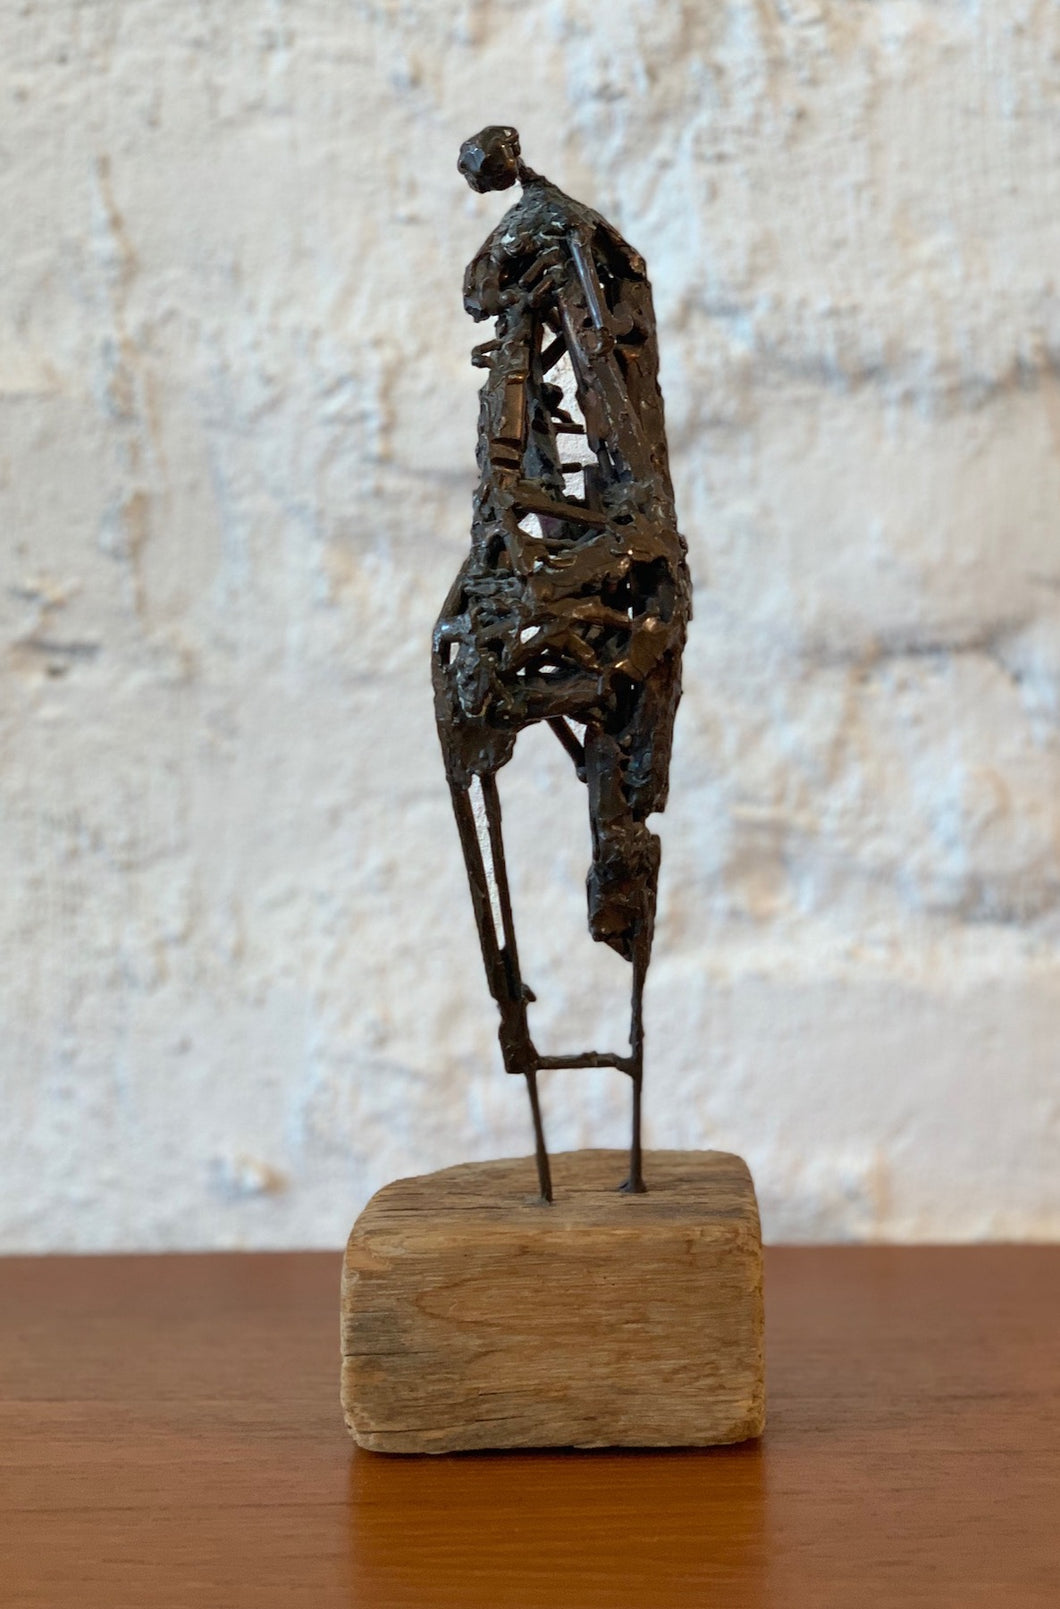 'Abstract Figure' by Åke Lagerborg